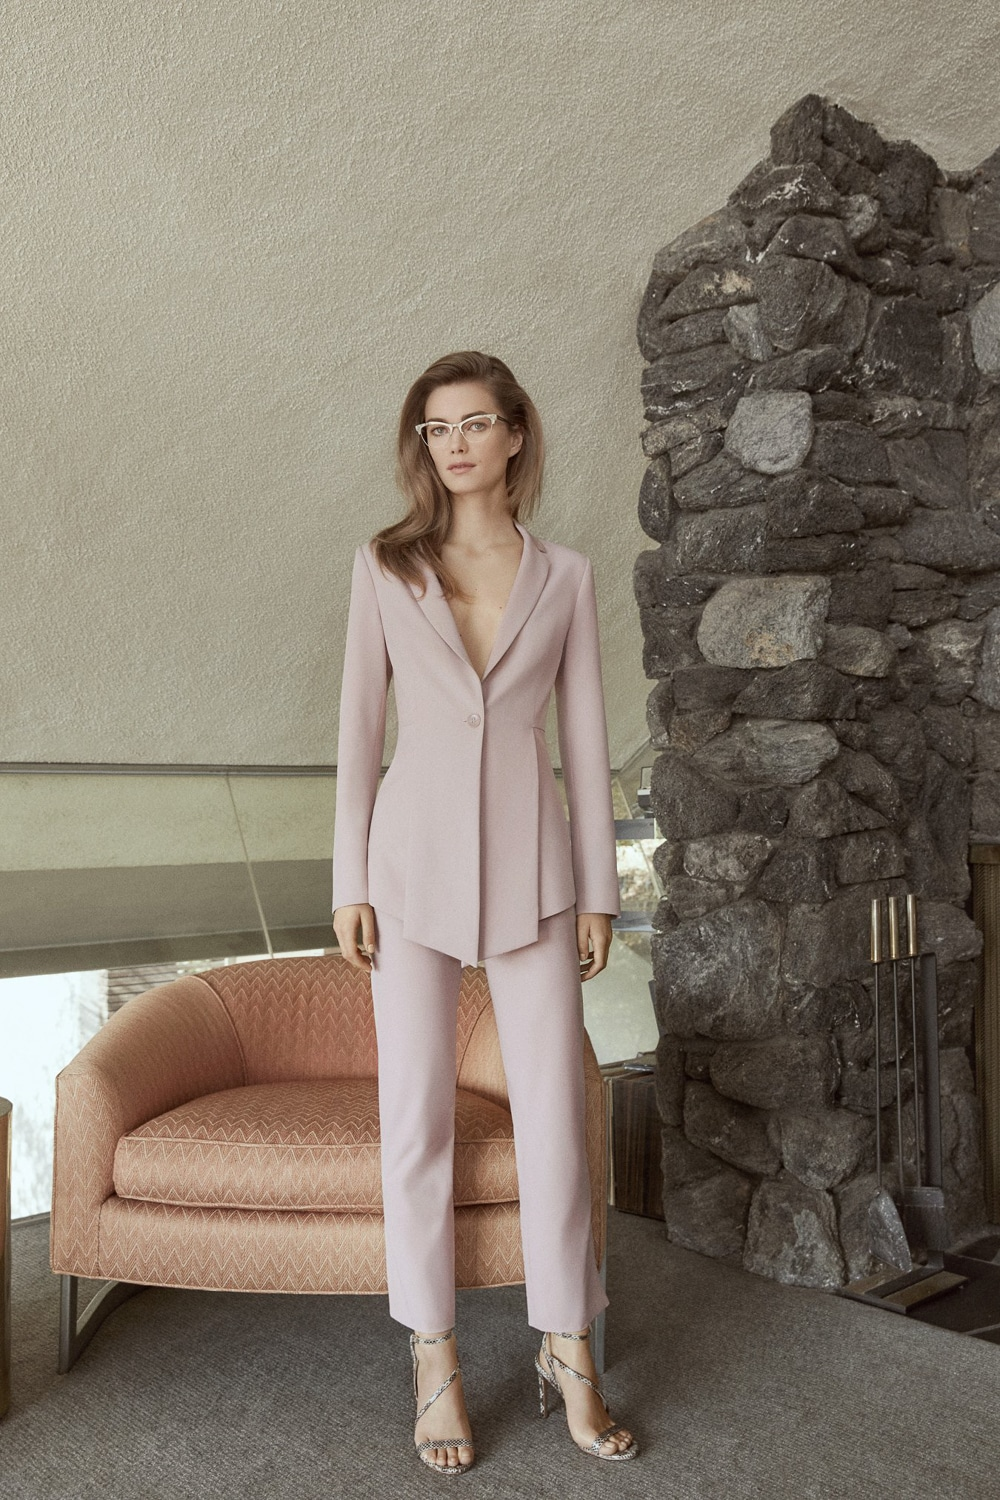 Mathilde Brandi by Olivia Malone for BCBG Max Azria Spring Summer 2018